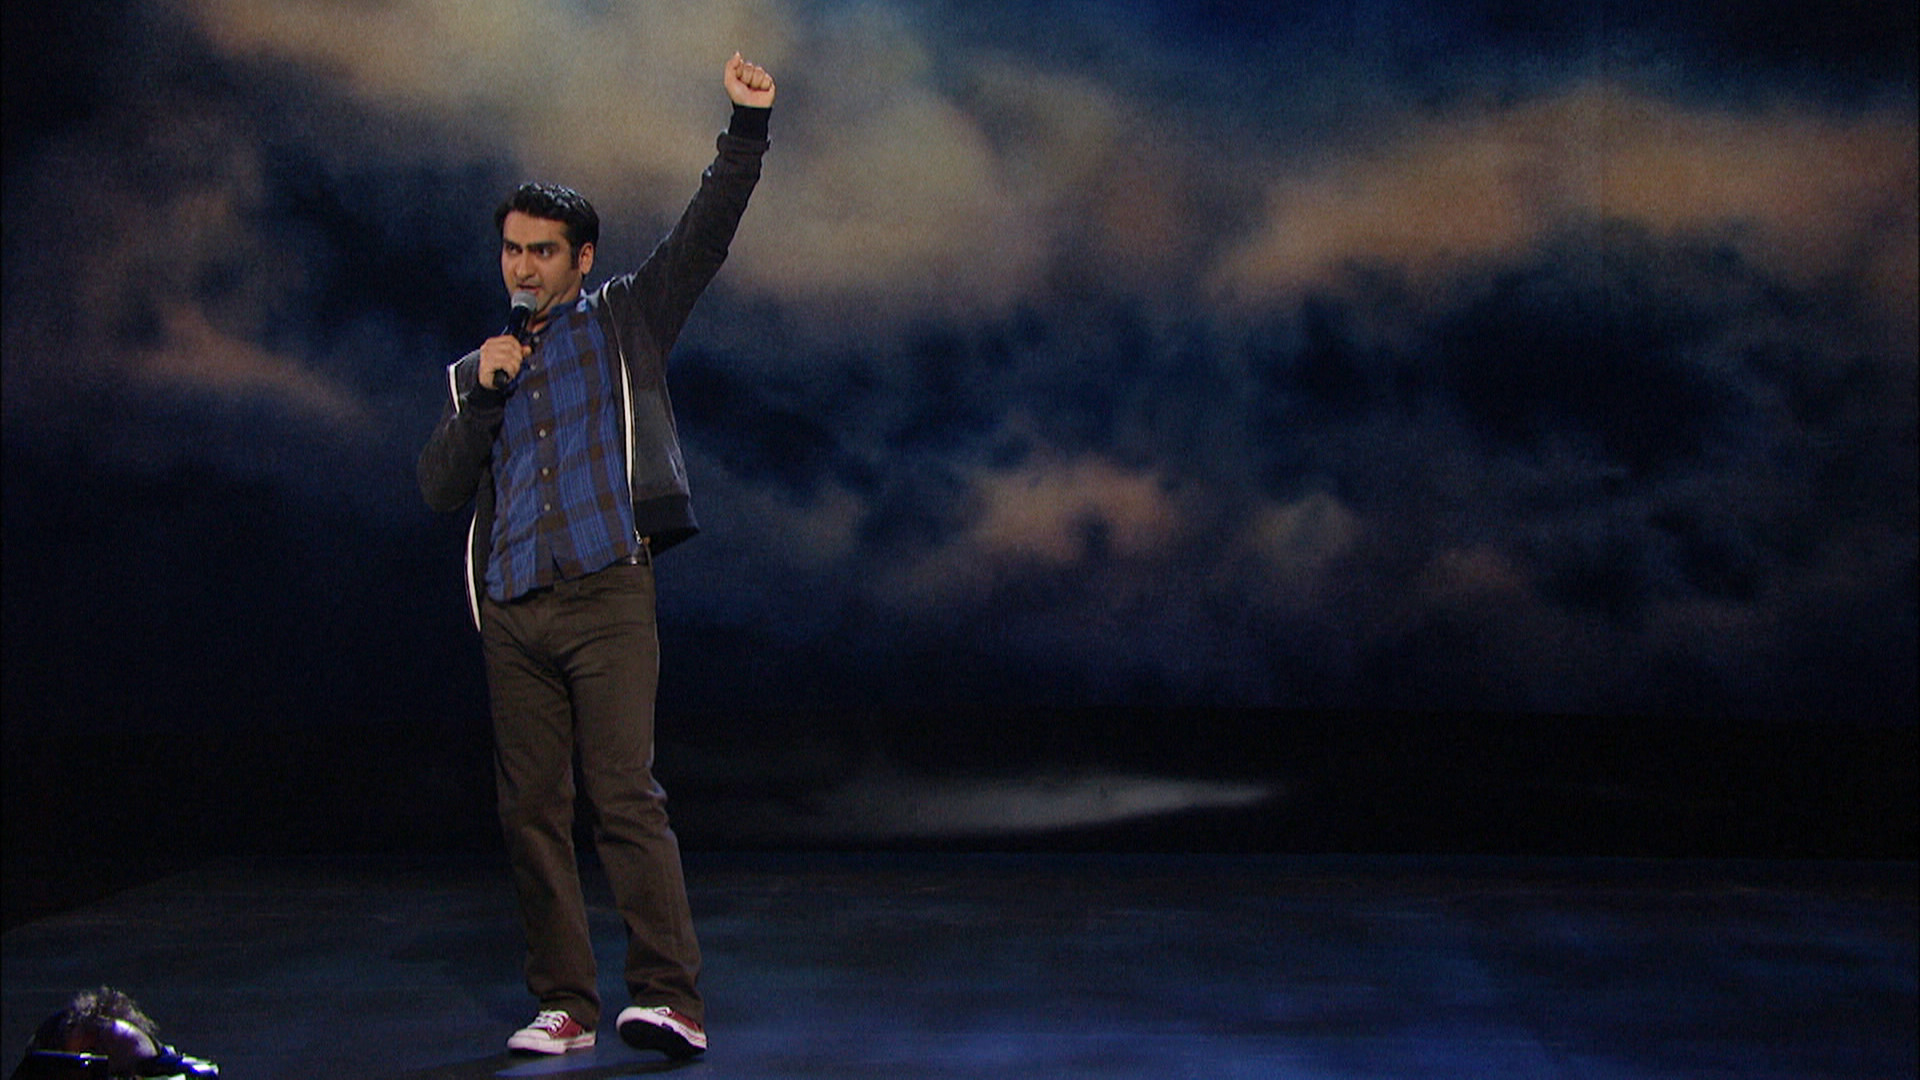 Uncensored - Kumail Nanjiani - Pakistani Name